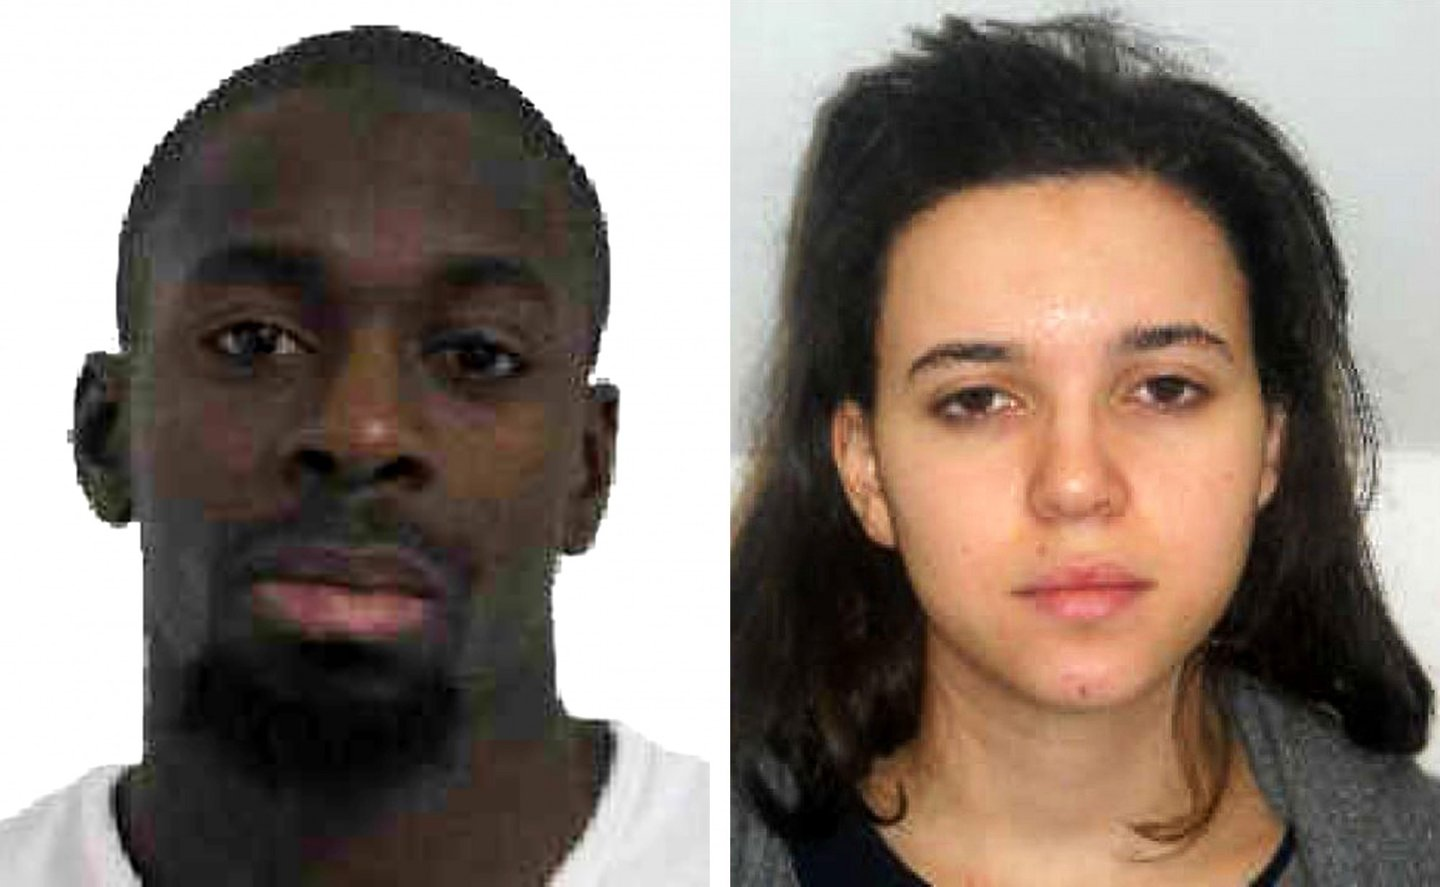 UNSPECIFIED - JANUARY 09:  Pictured in this handout provided by the Direction Centrale de la Police Judiciaire on January 9, 2015 is suspect Hayat Boumeddiene, aged 26, known associate of Amedy Coulibaly who is wanted in connection with the shooting of a French policewoman yesterday and suspected as being involved in the ongoing hostage situation at a Kosher store in the Porte de Vincennes area of Paris. France continues at the highest level of security alert following the attack at the satirical weekly Charlie Hebdo in which twelve people were killed on Wednesday. On January 8 French police published photos of two brothers, Said Kouachi and Cherif Kouachi, wanted as suspects over the massacre at the magazine. (Photo by Direction centrale de la Police judiciaire via Getty Images)